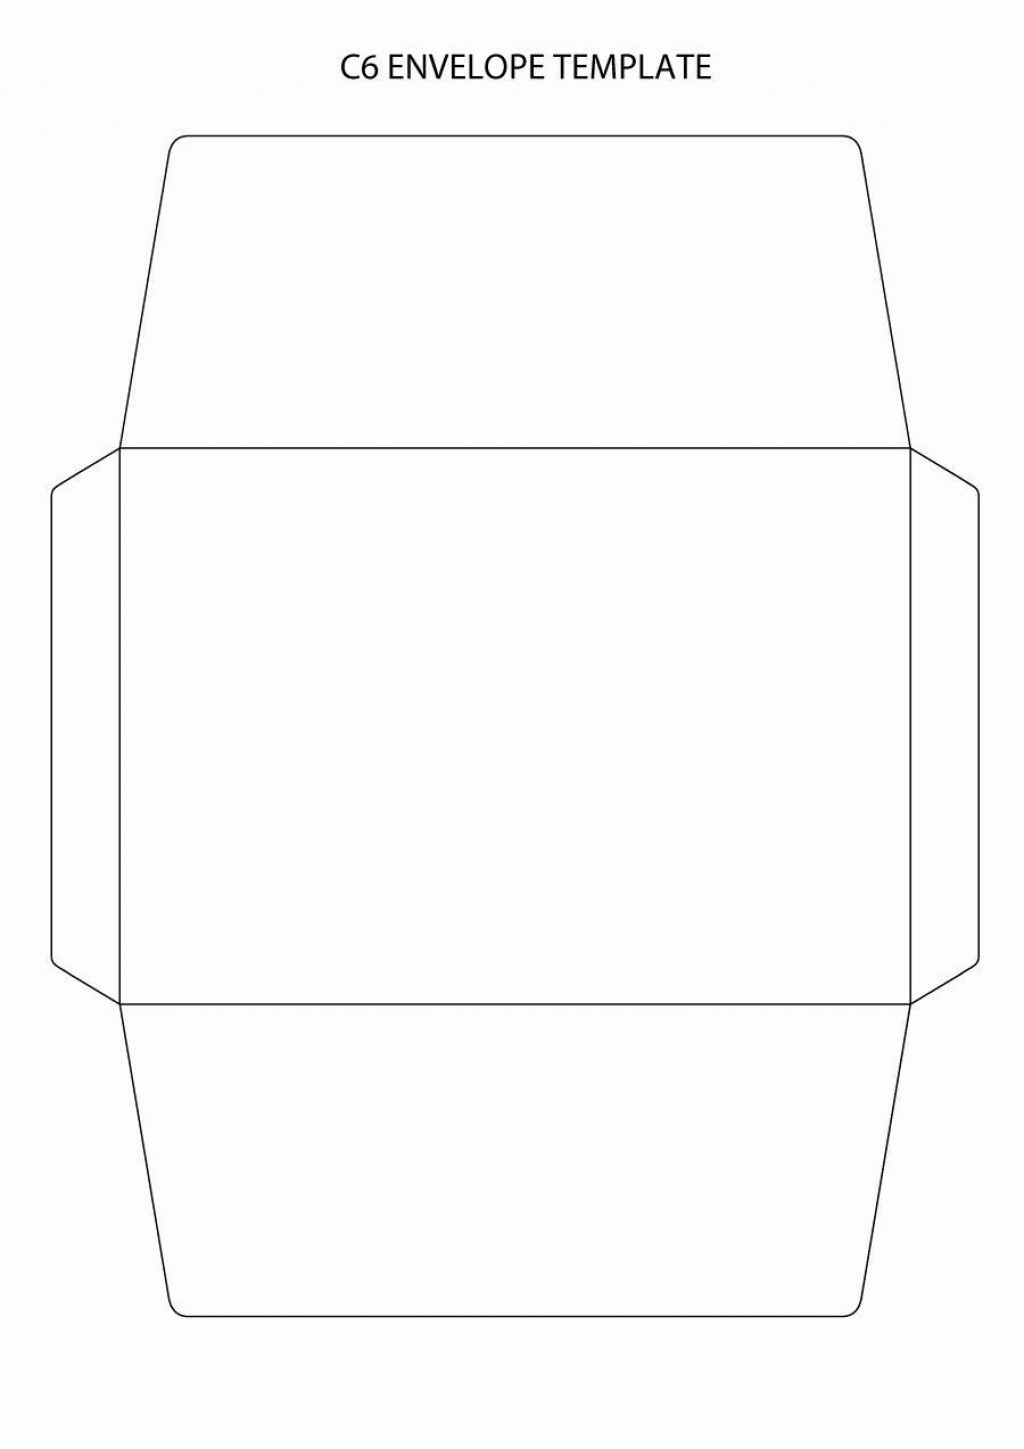 000 Fascinating Envelope Template For Word Design  Avery A7 5x7 MicrosoftLarge